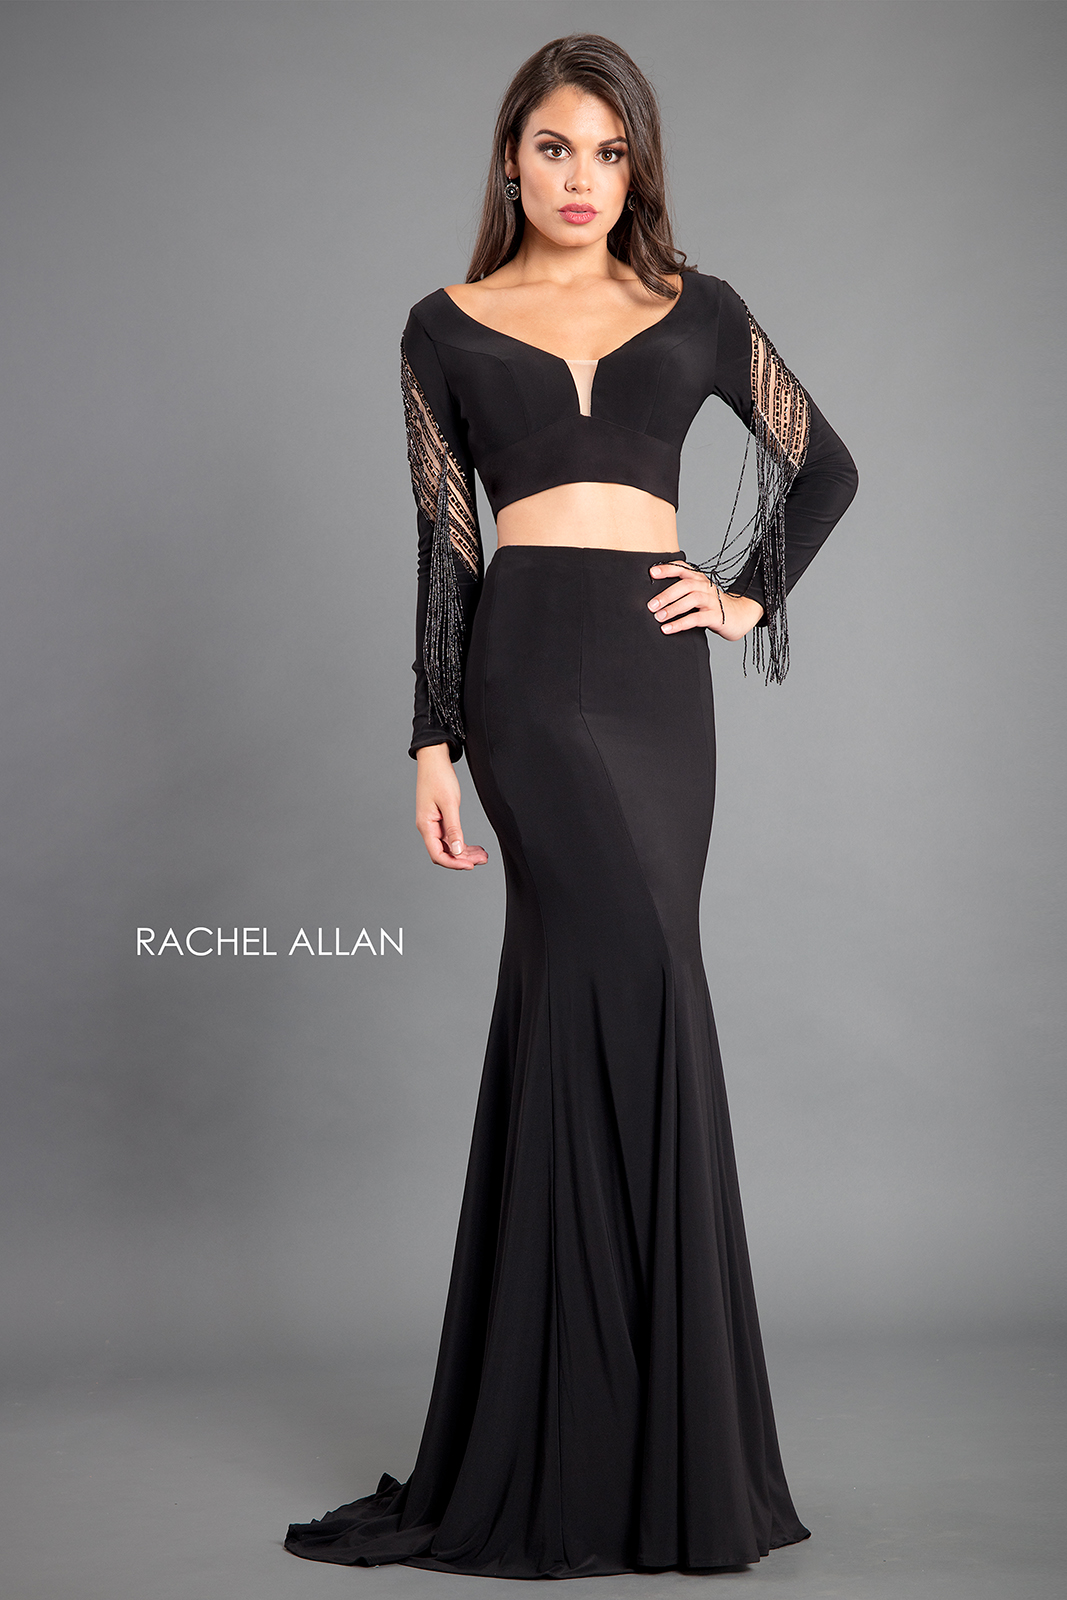 Scoop Neck Fitted Long Couture Dresses in Black Color